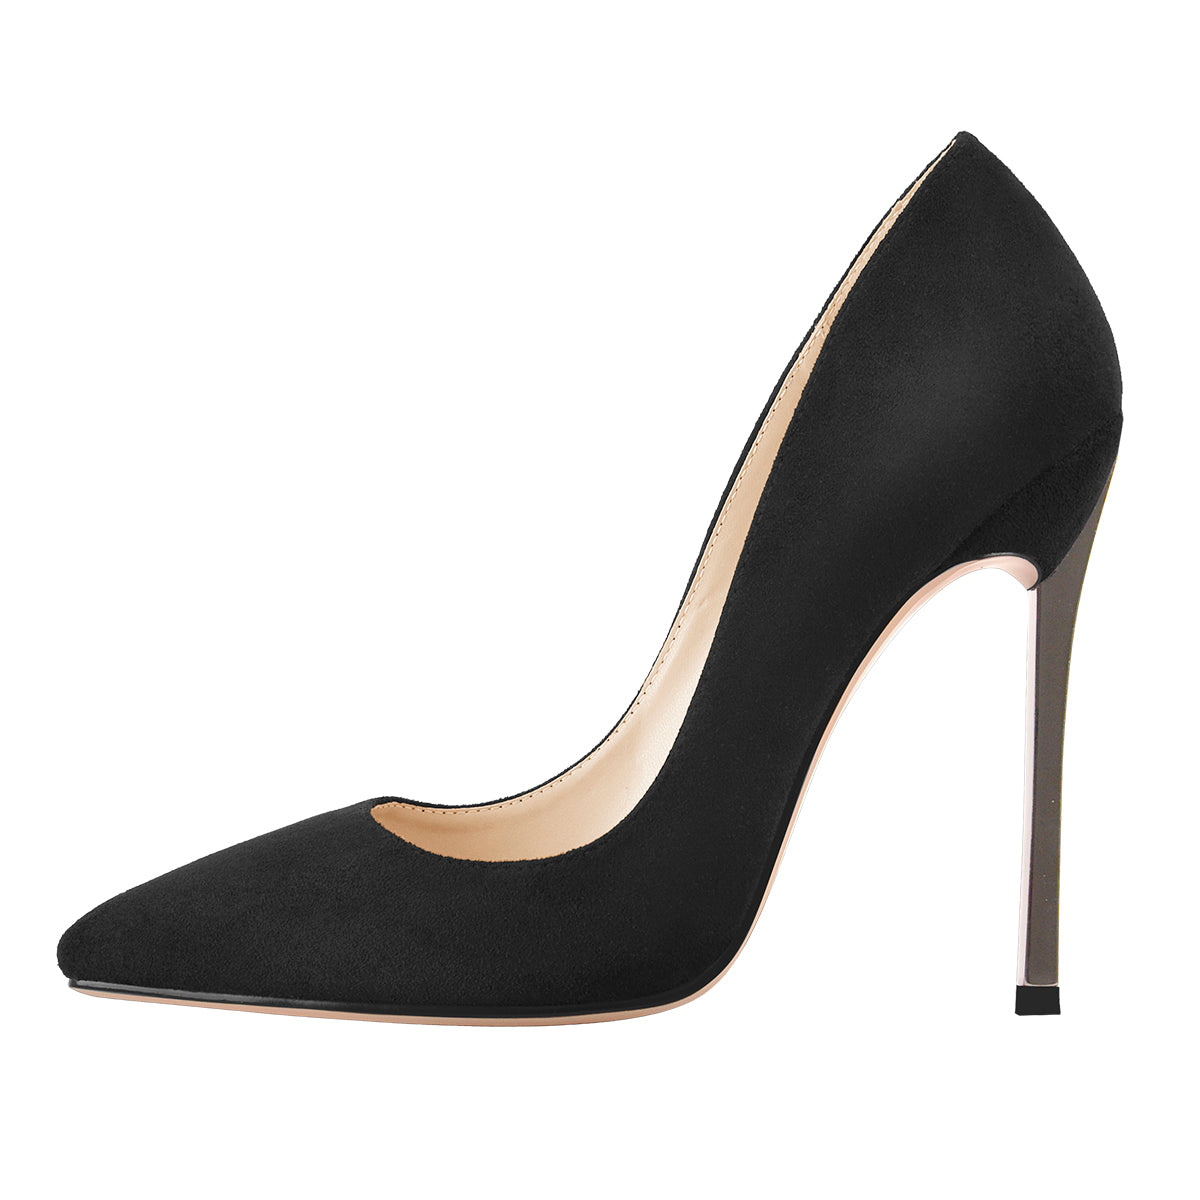 Black Suede Metal Heels Pointed Toe High Heel Pumps